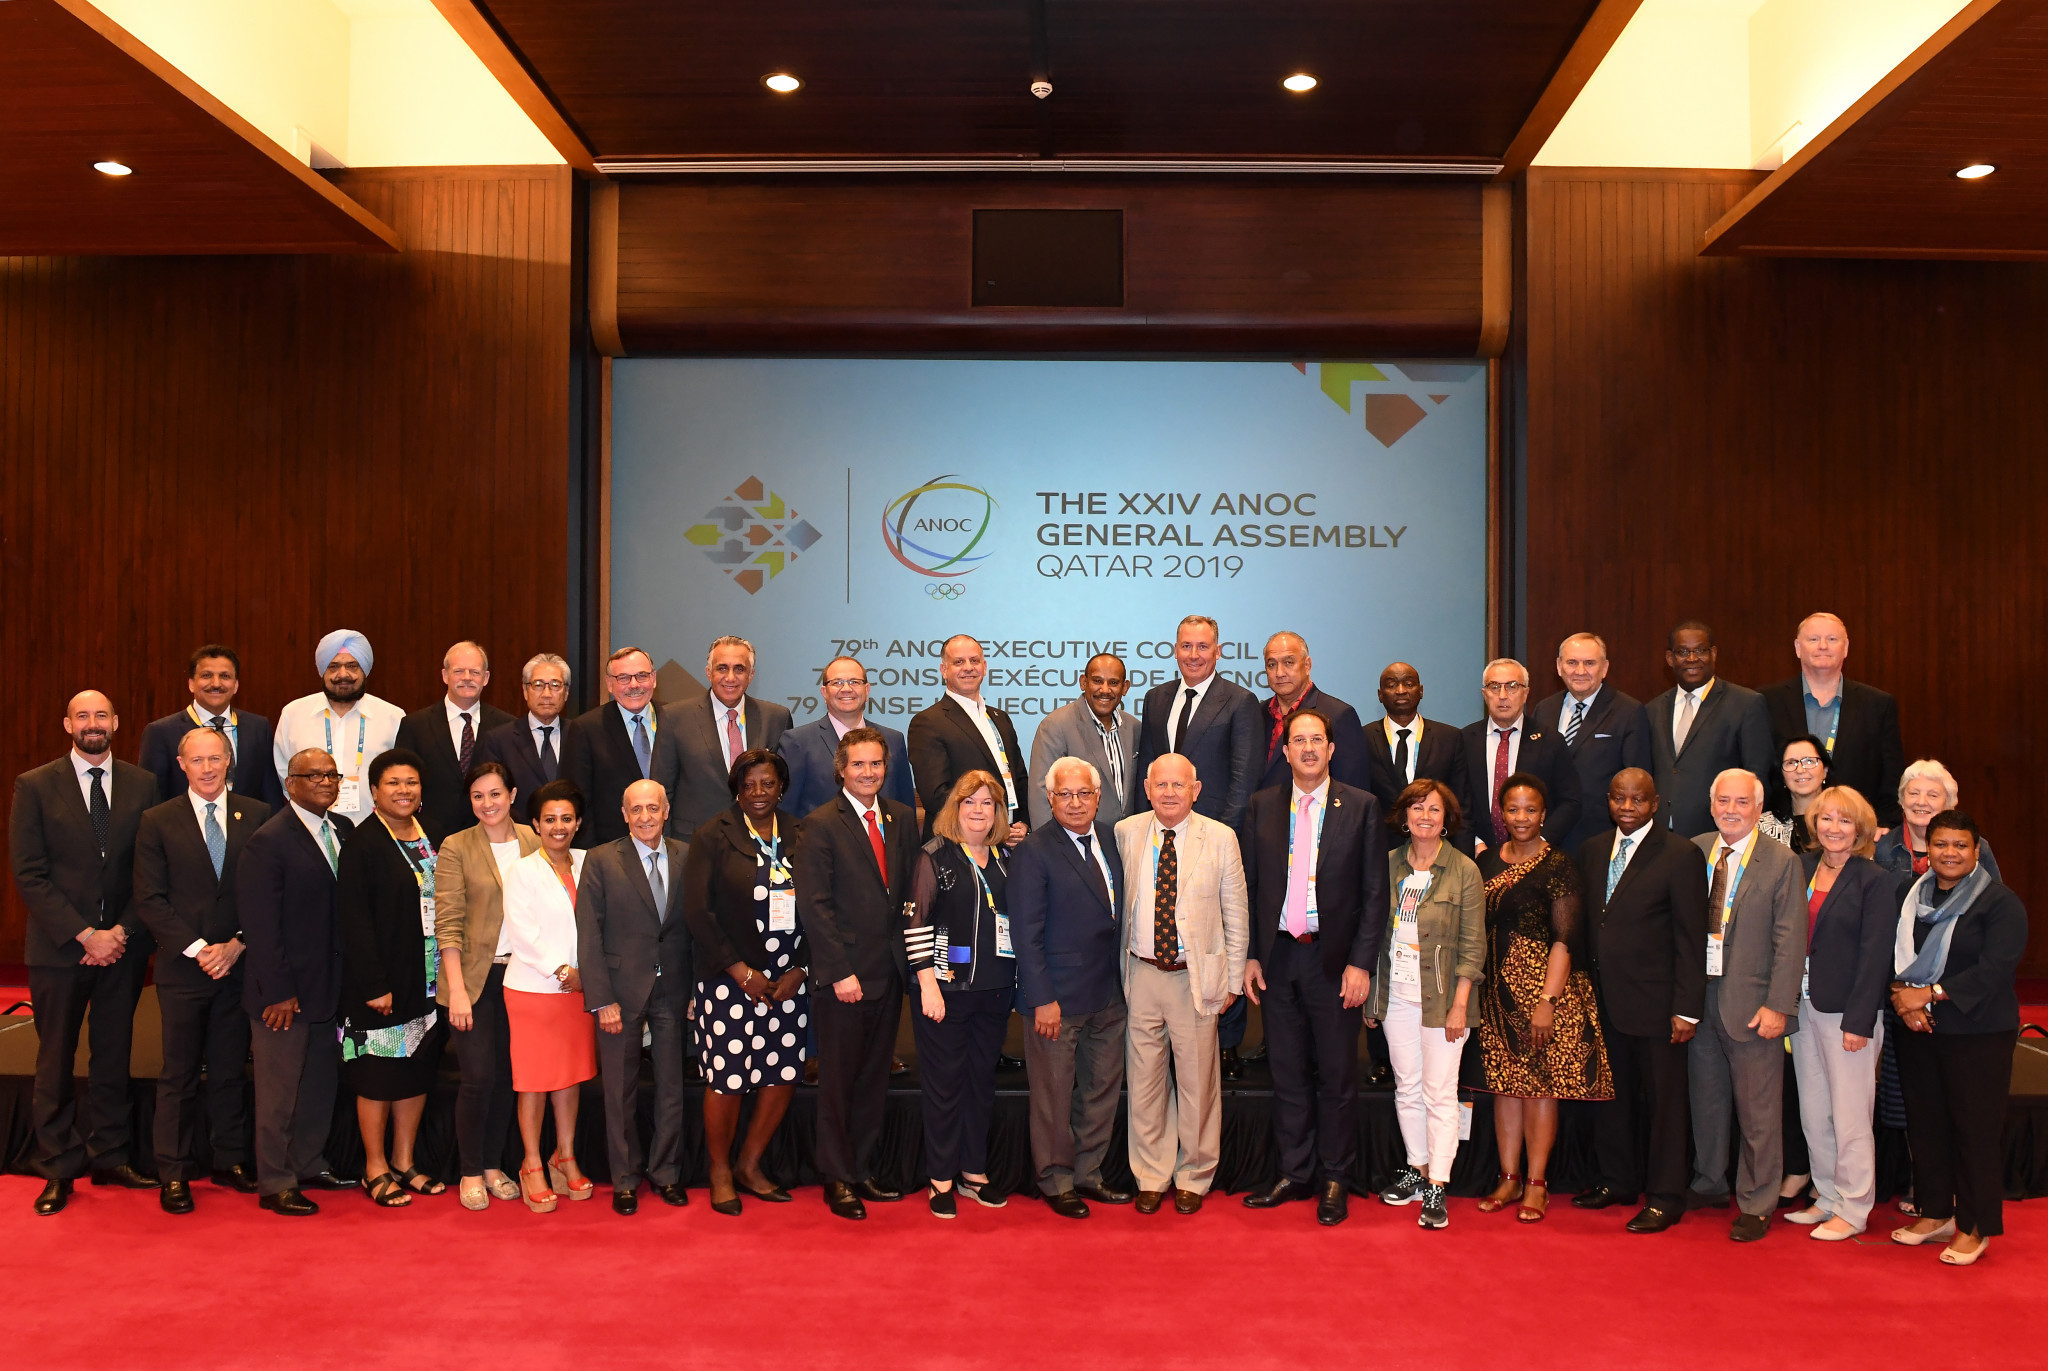 This year's ANOC General Assembly will consider constitutional change proposals including a minimum of 30 per cent female representation on the ANOC executive committee ©Getty Images